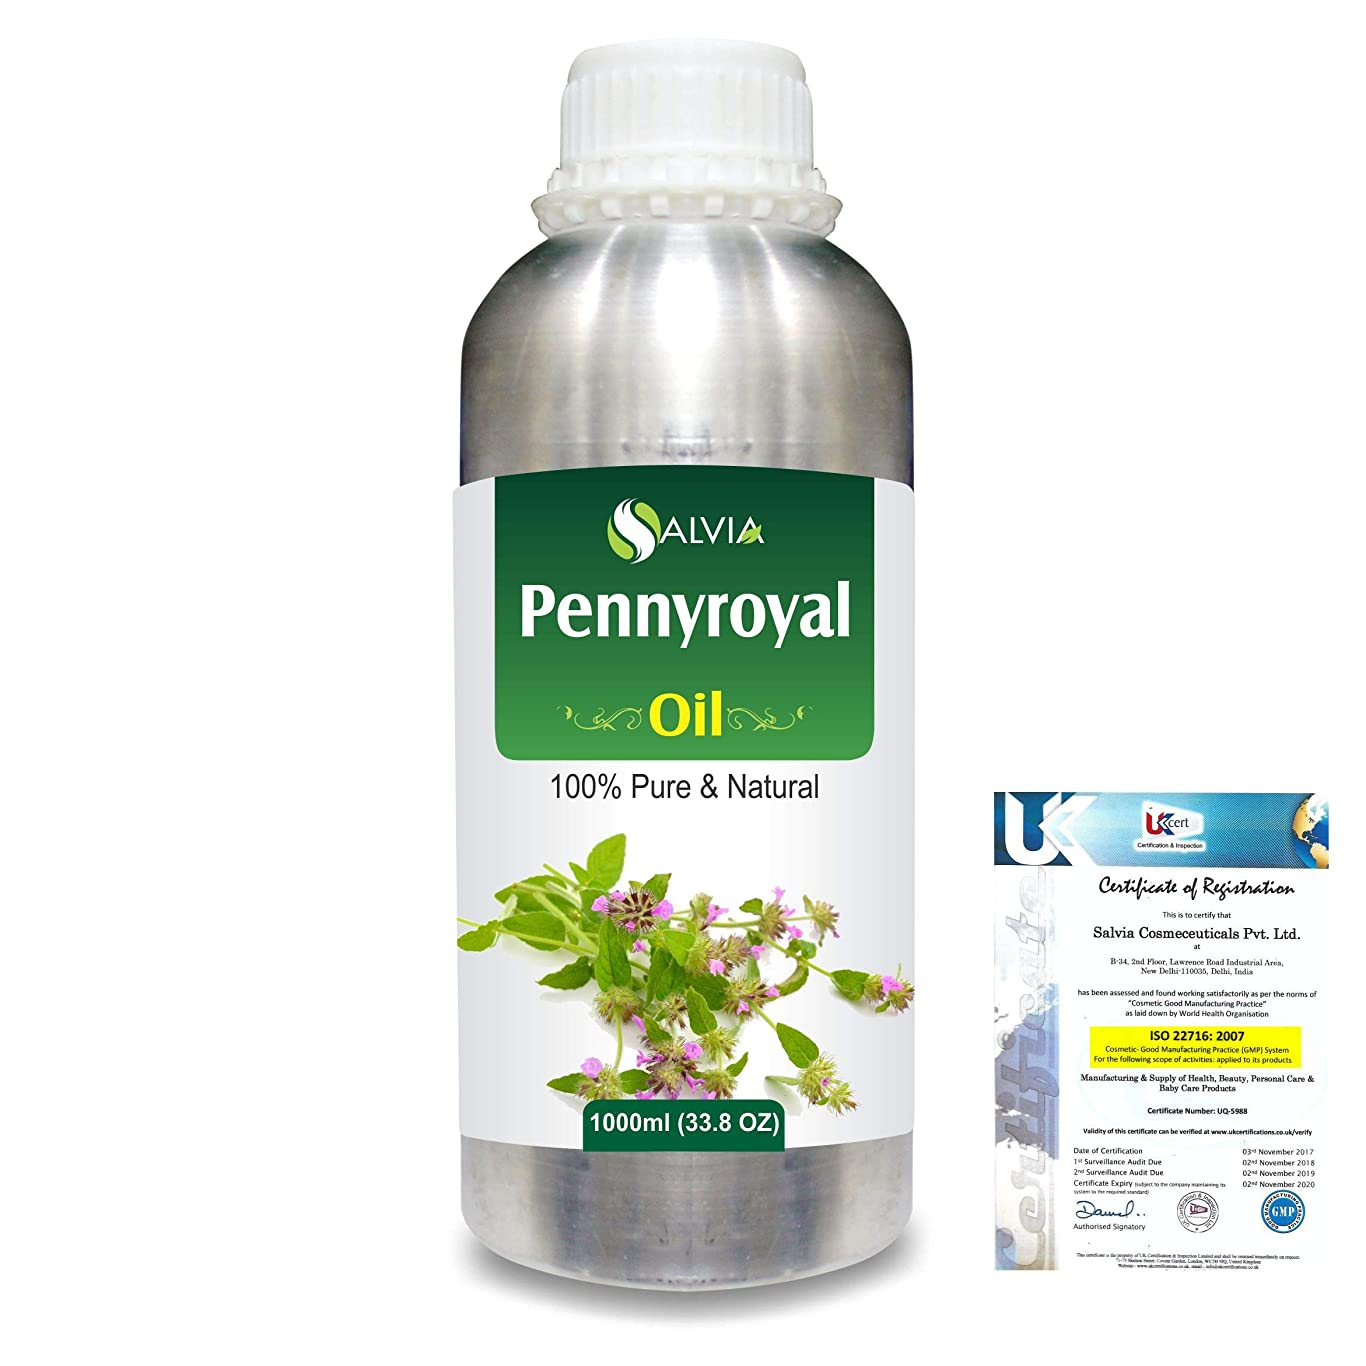 大学院バイオレット落ち込んでいるPennyroyal (Mentha pulegium) 100% Natural Pure Essential Oil 1000ml/33.8fl.oz.